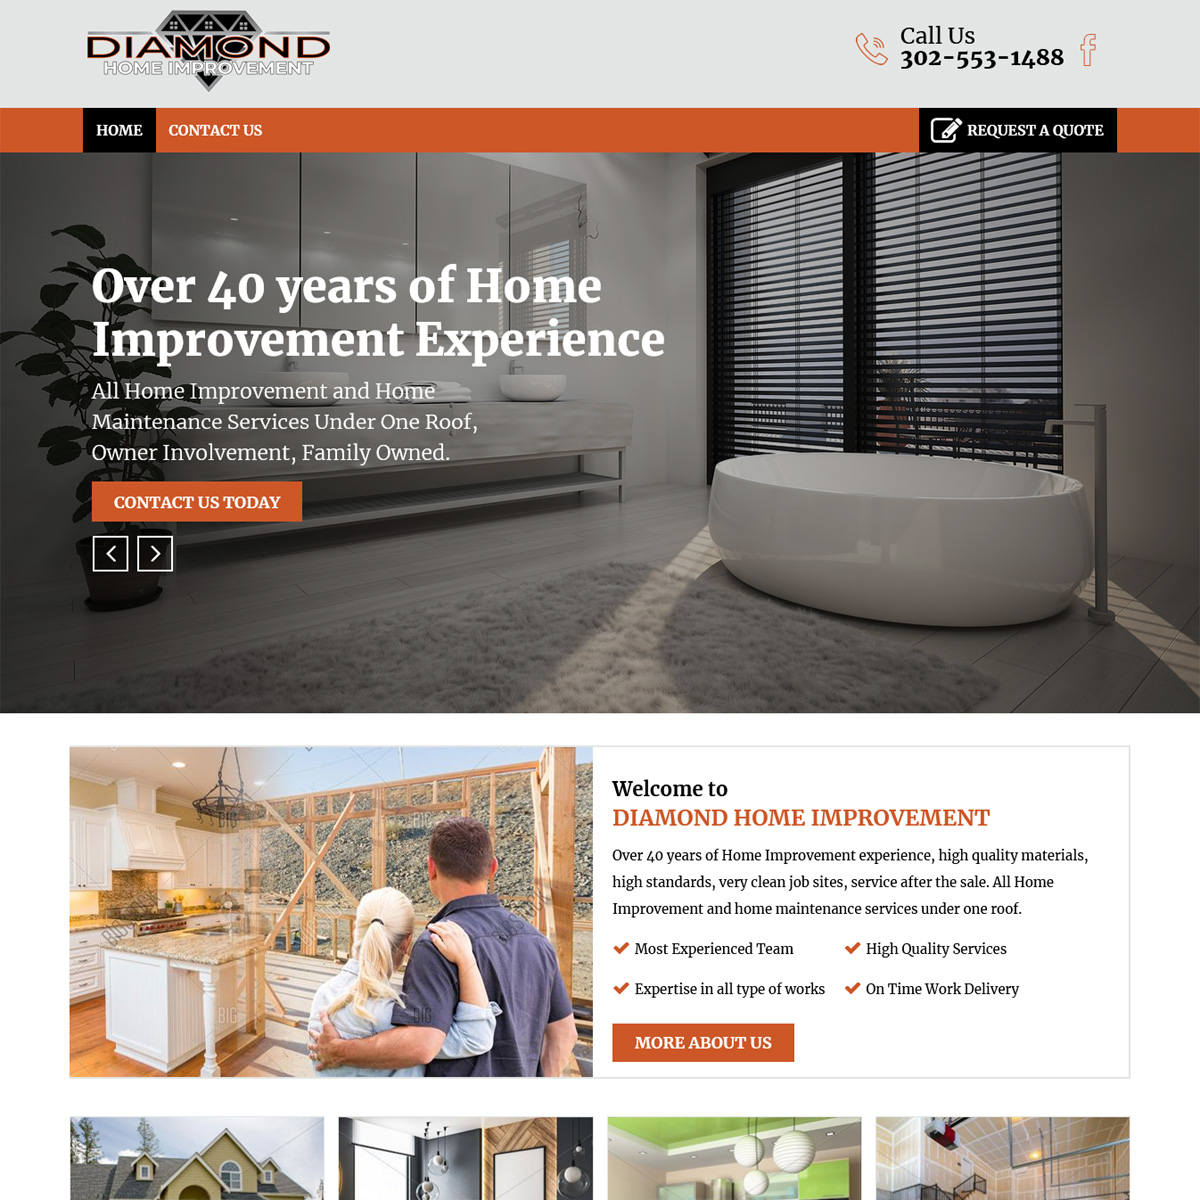 Diamond Home Improvement Website Design